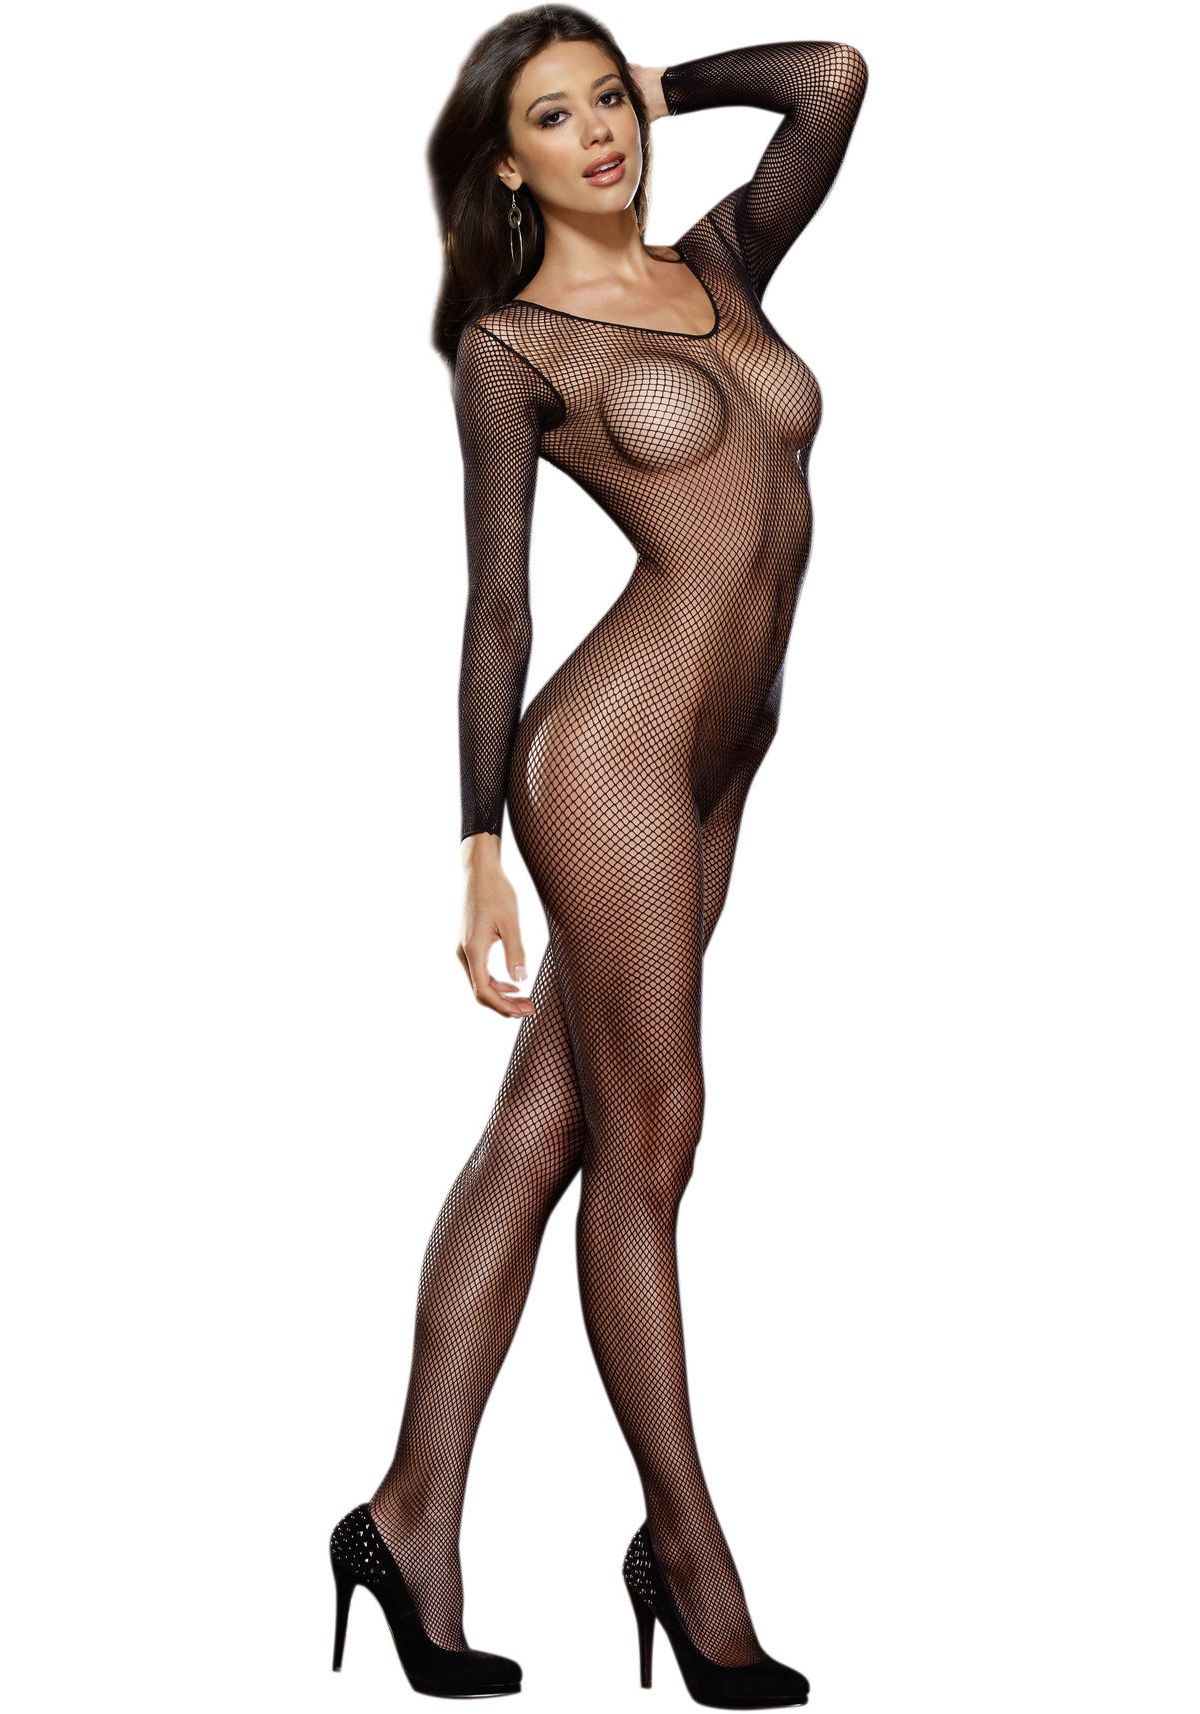 4025d1637c7 Dreamgirl-0015-Amsterdam-Fishnet-Long-Sleeved-Open-Crotch-